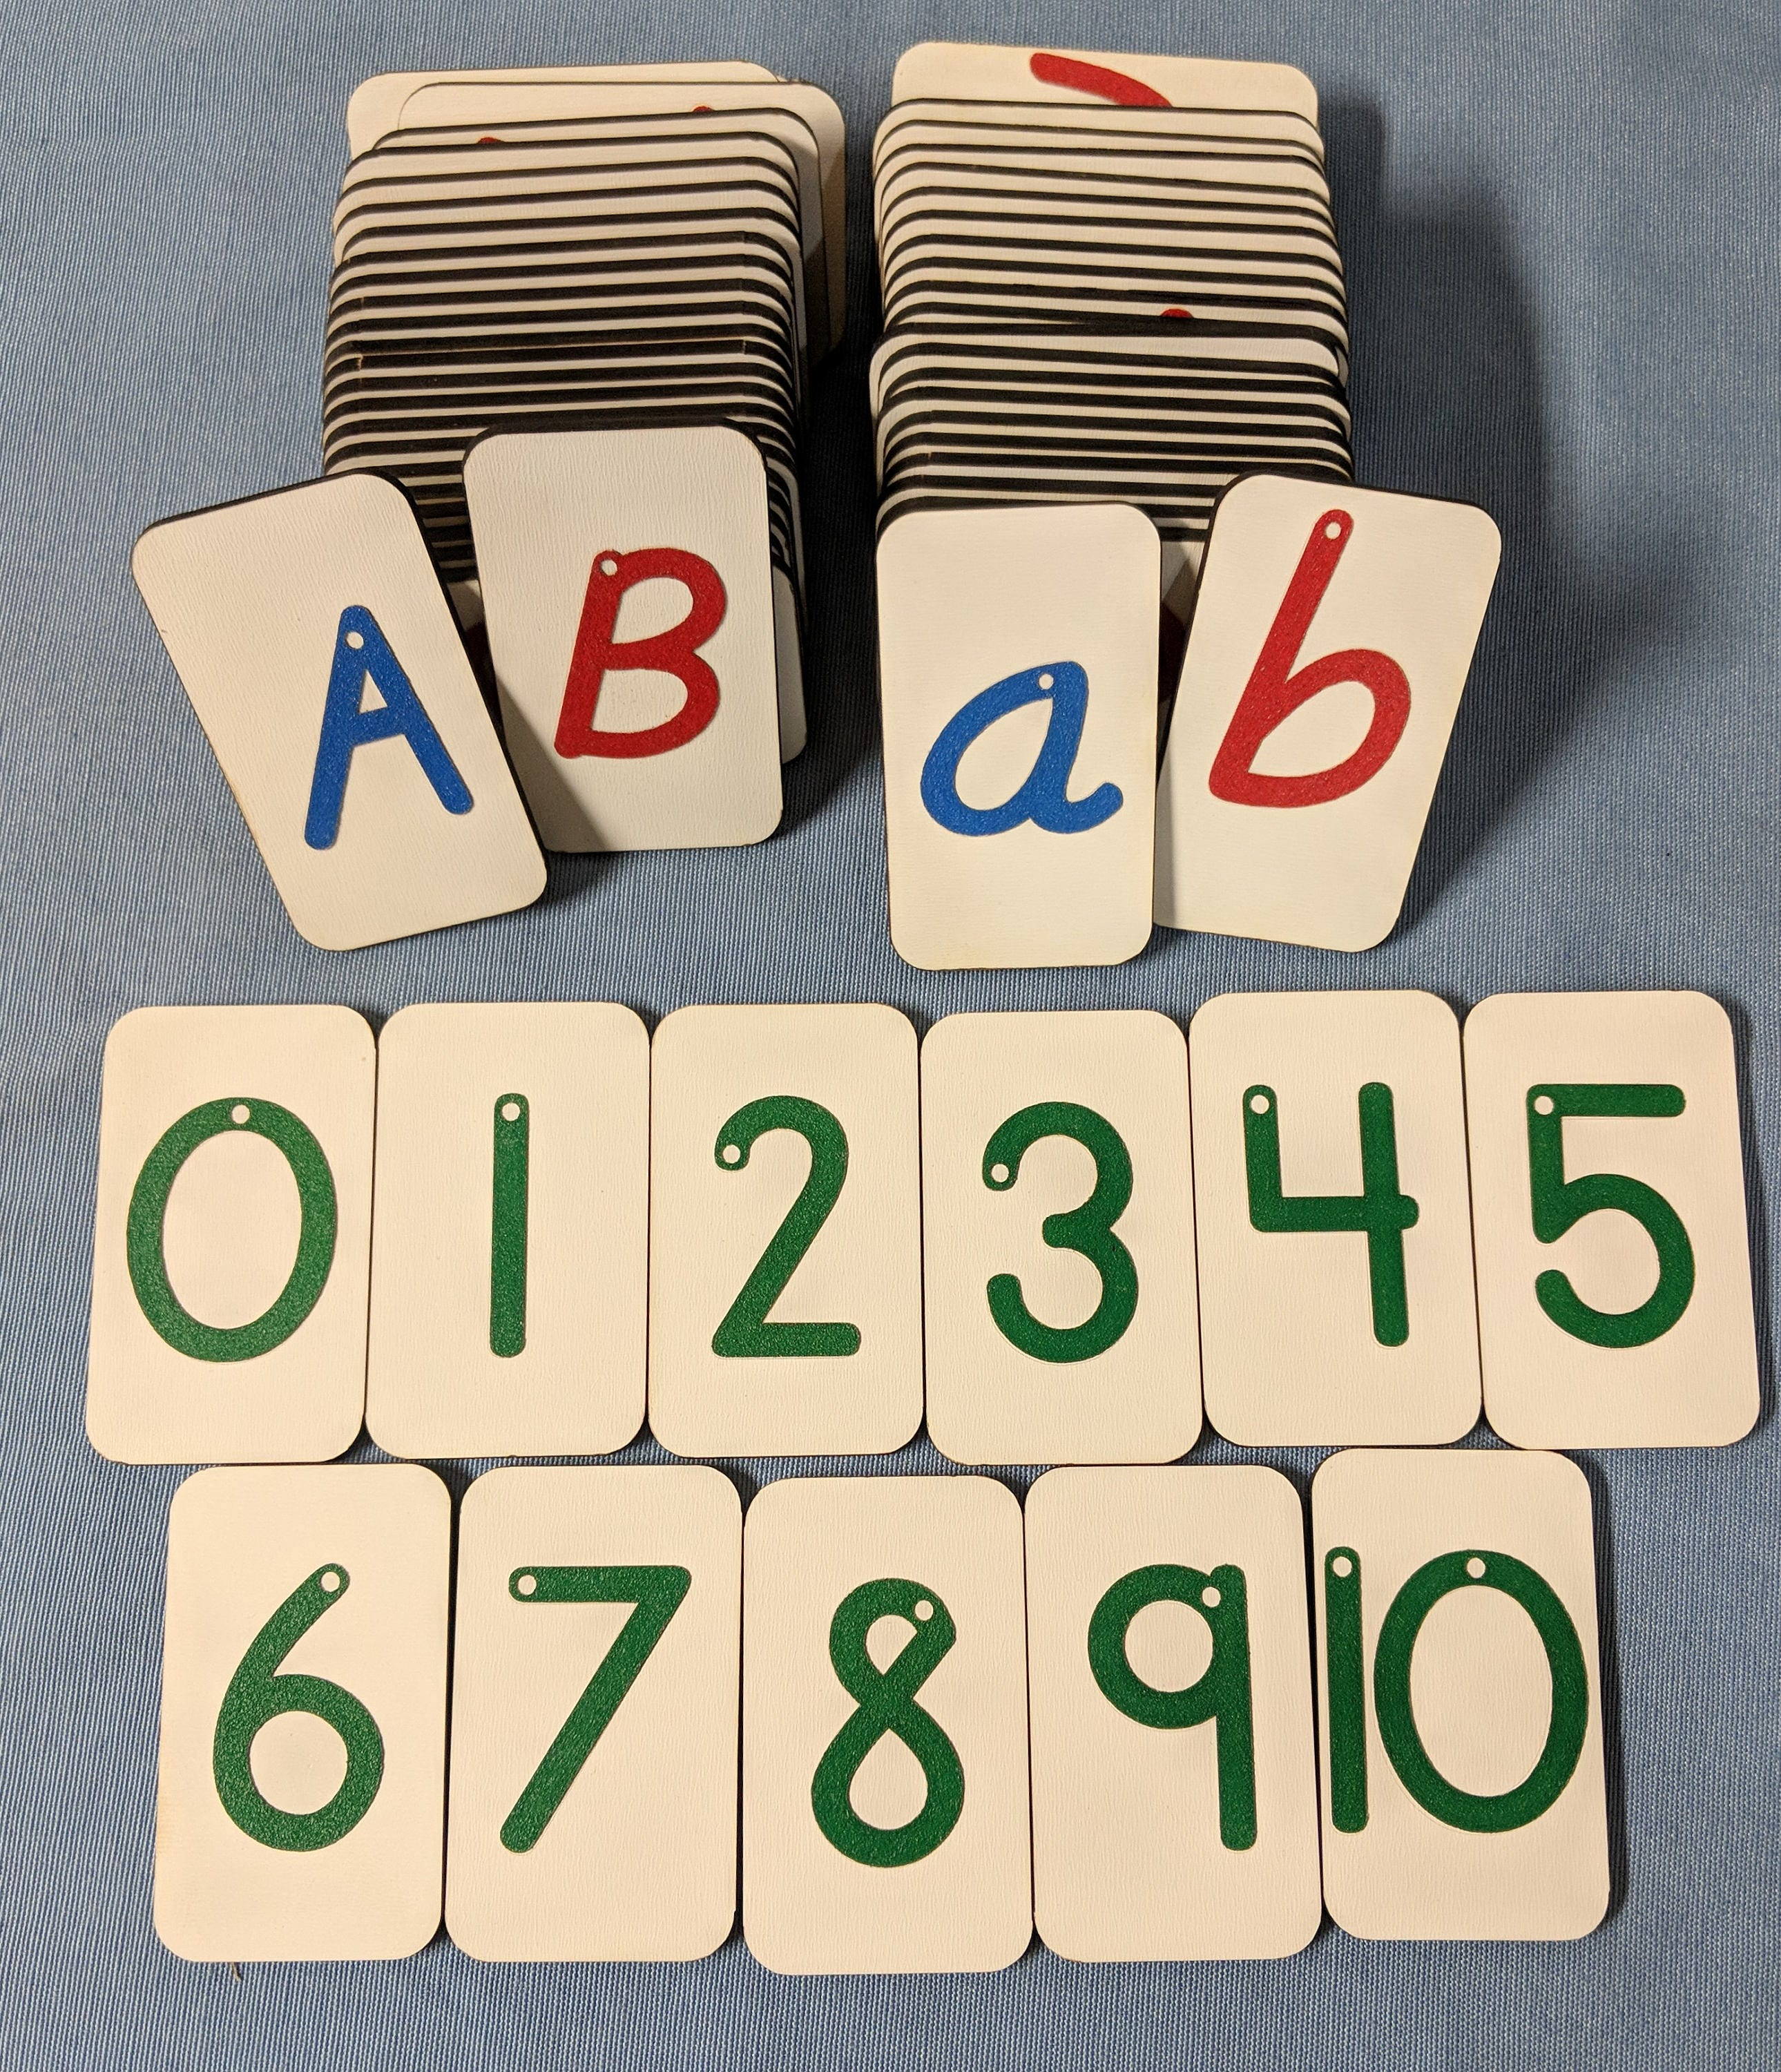 Italic (style 6) Sandpaper letters Uppercase, Lowercase and Numbers 0-10 on  MINI Fiberboard wood boards